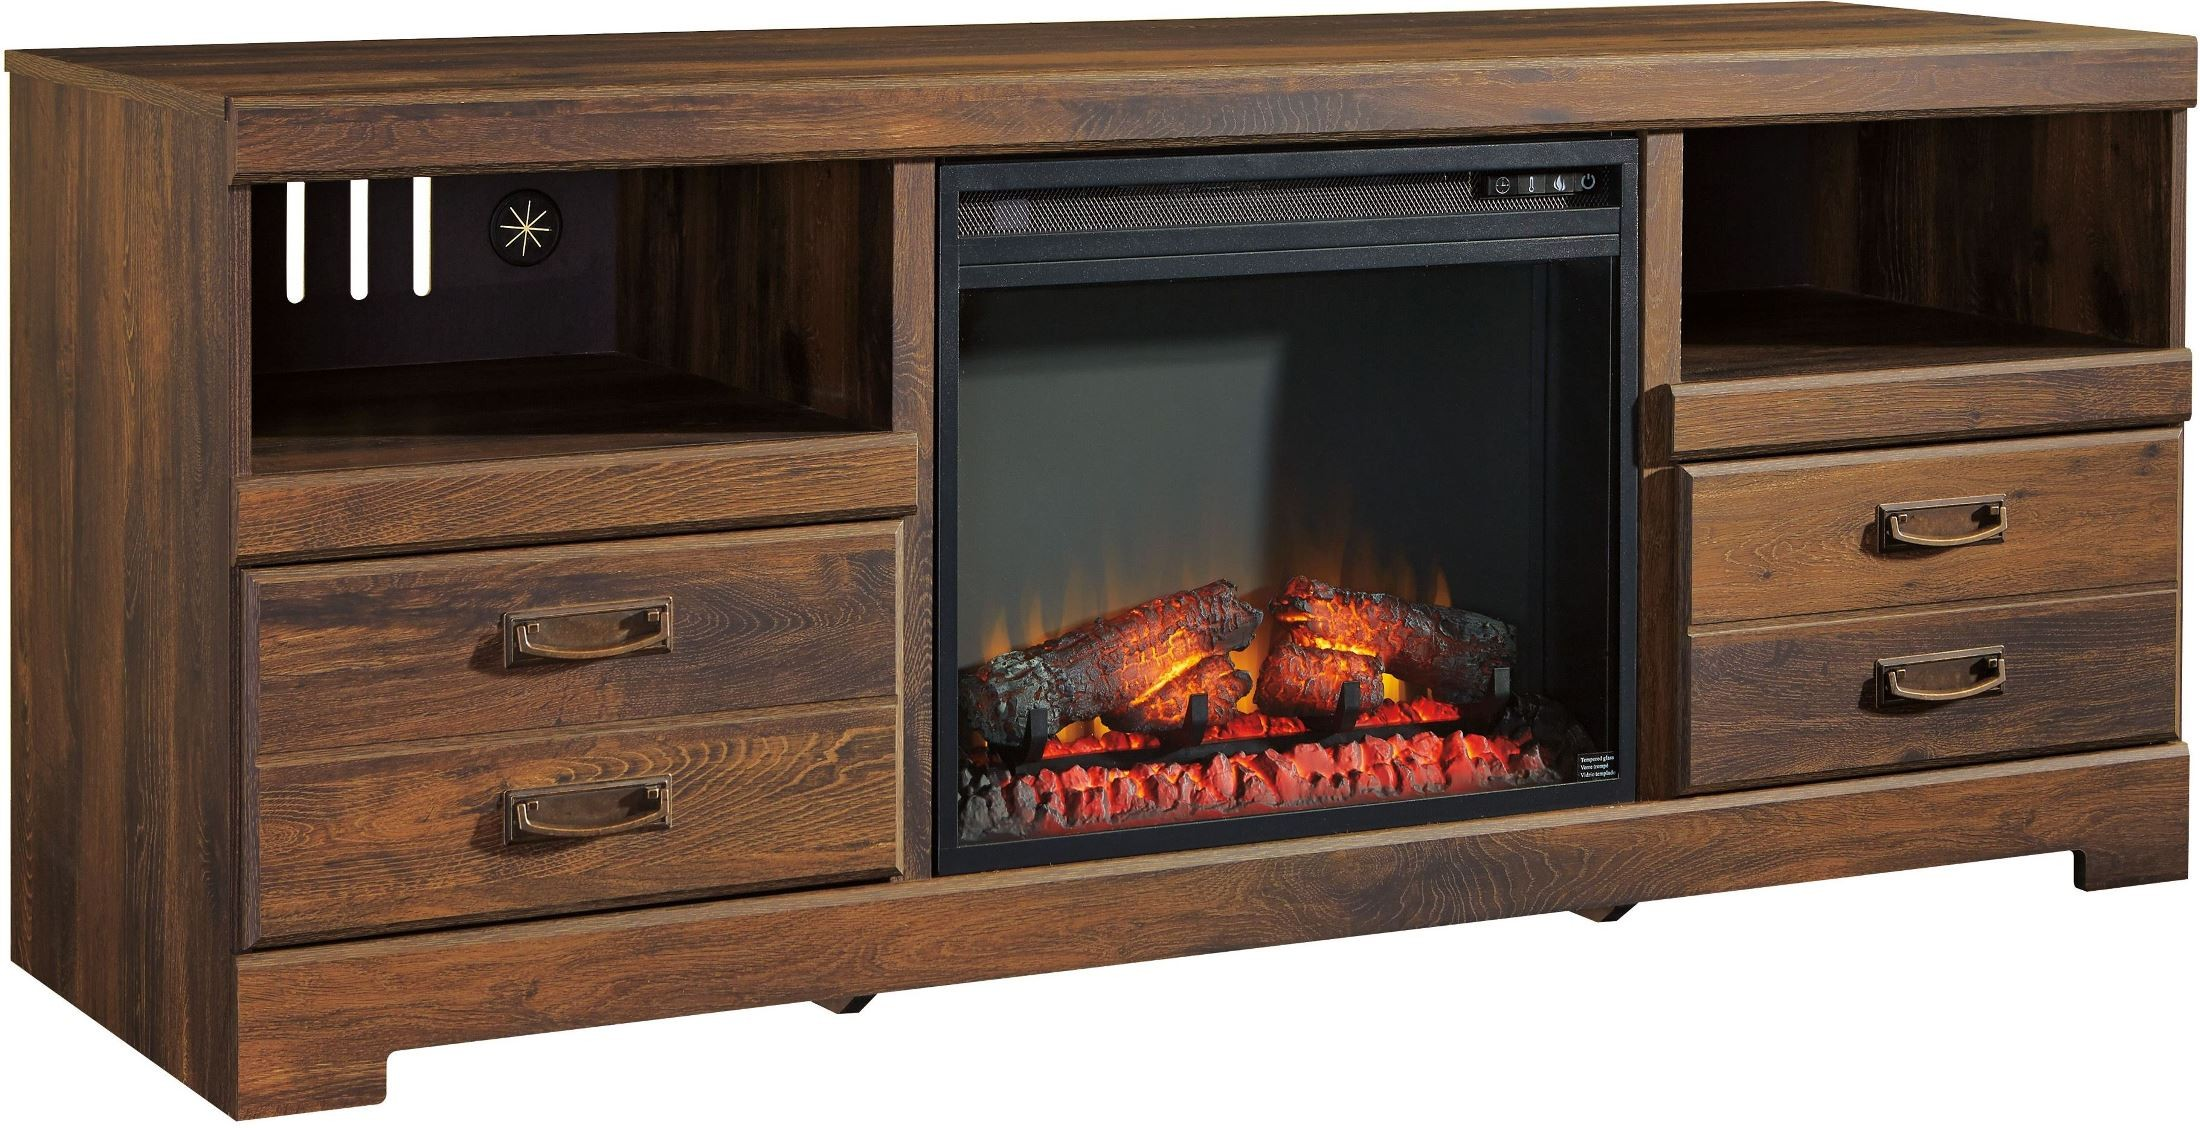 Quinden Lg Tv Stand With Glass Stone Fireplace Insert From Ashley W246 68 W100 02 Coleman